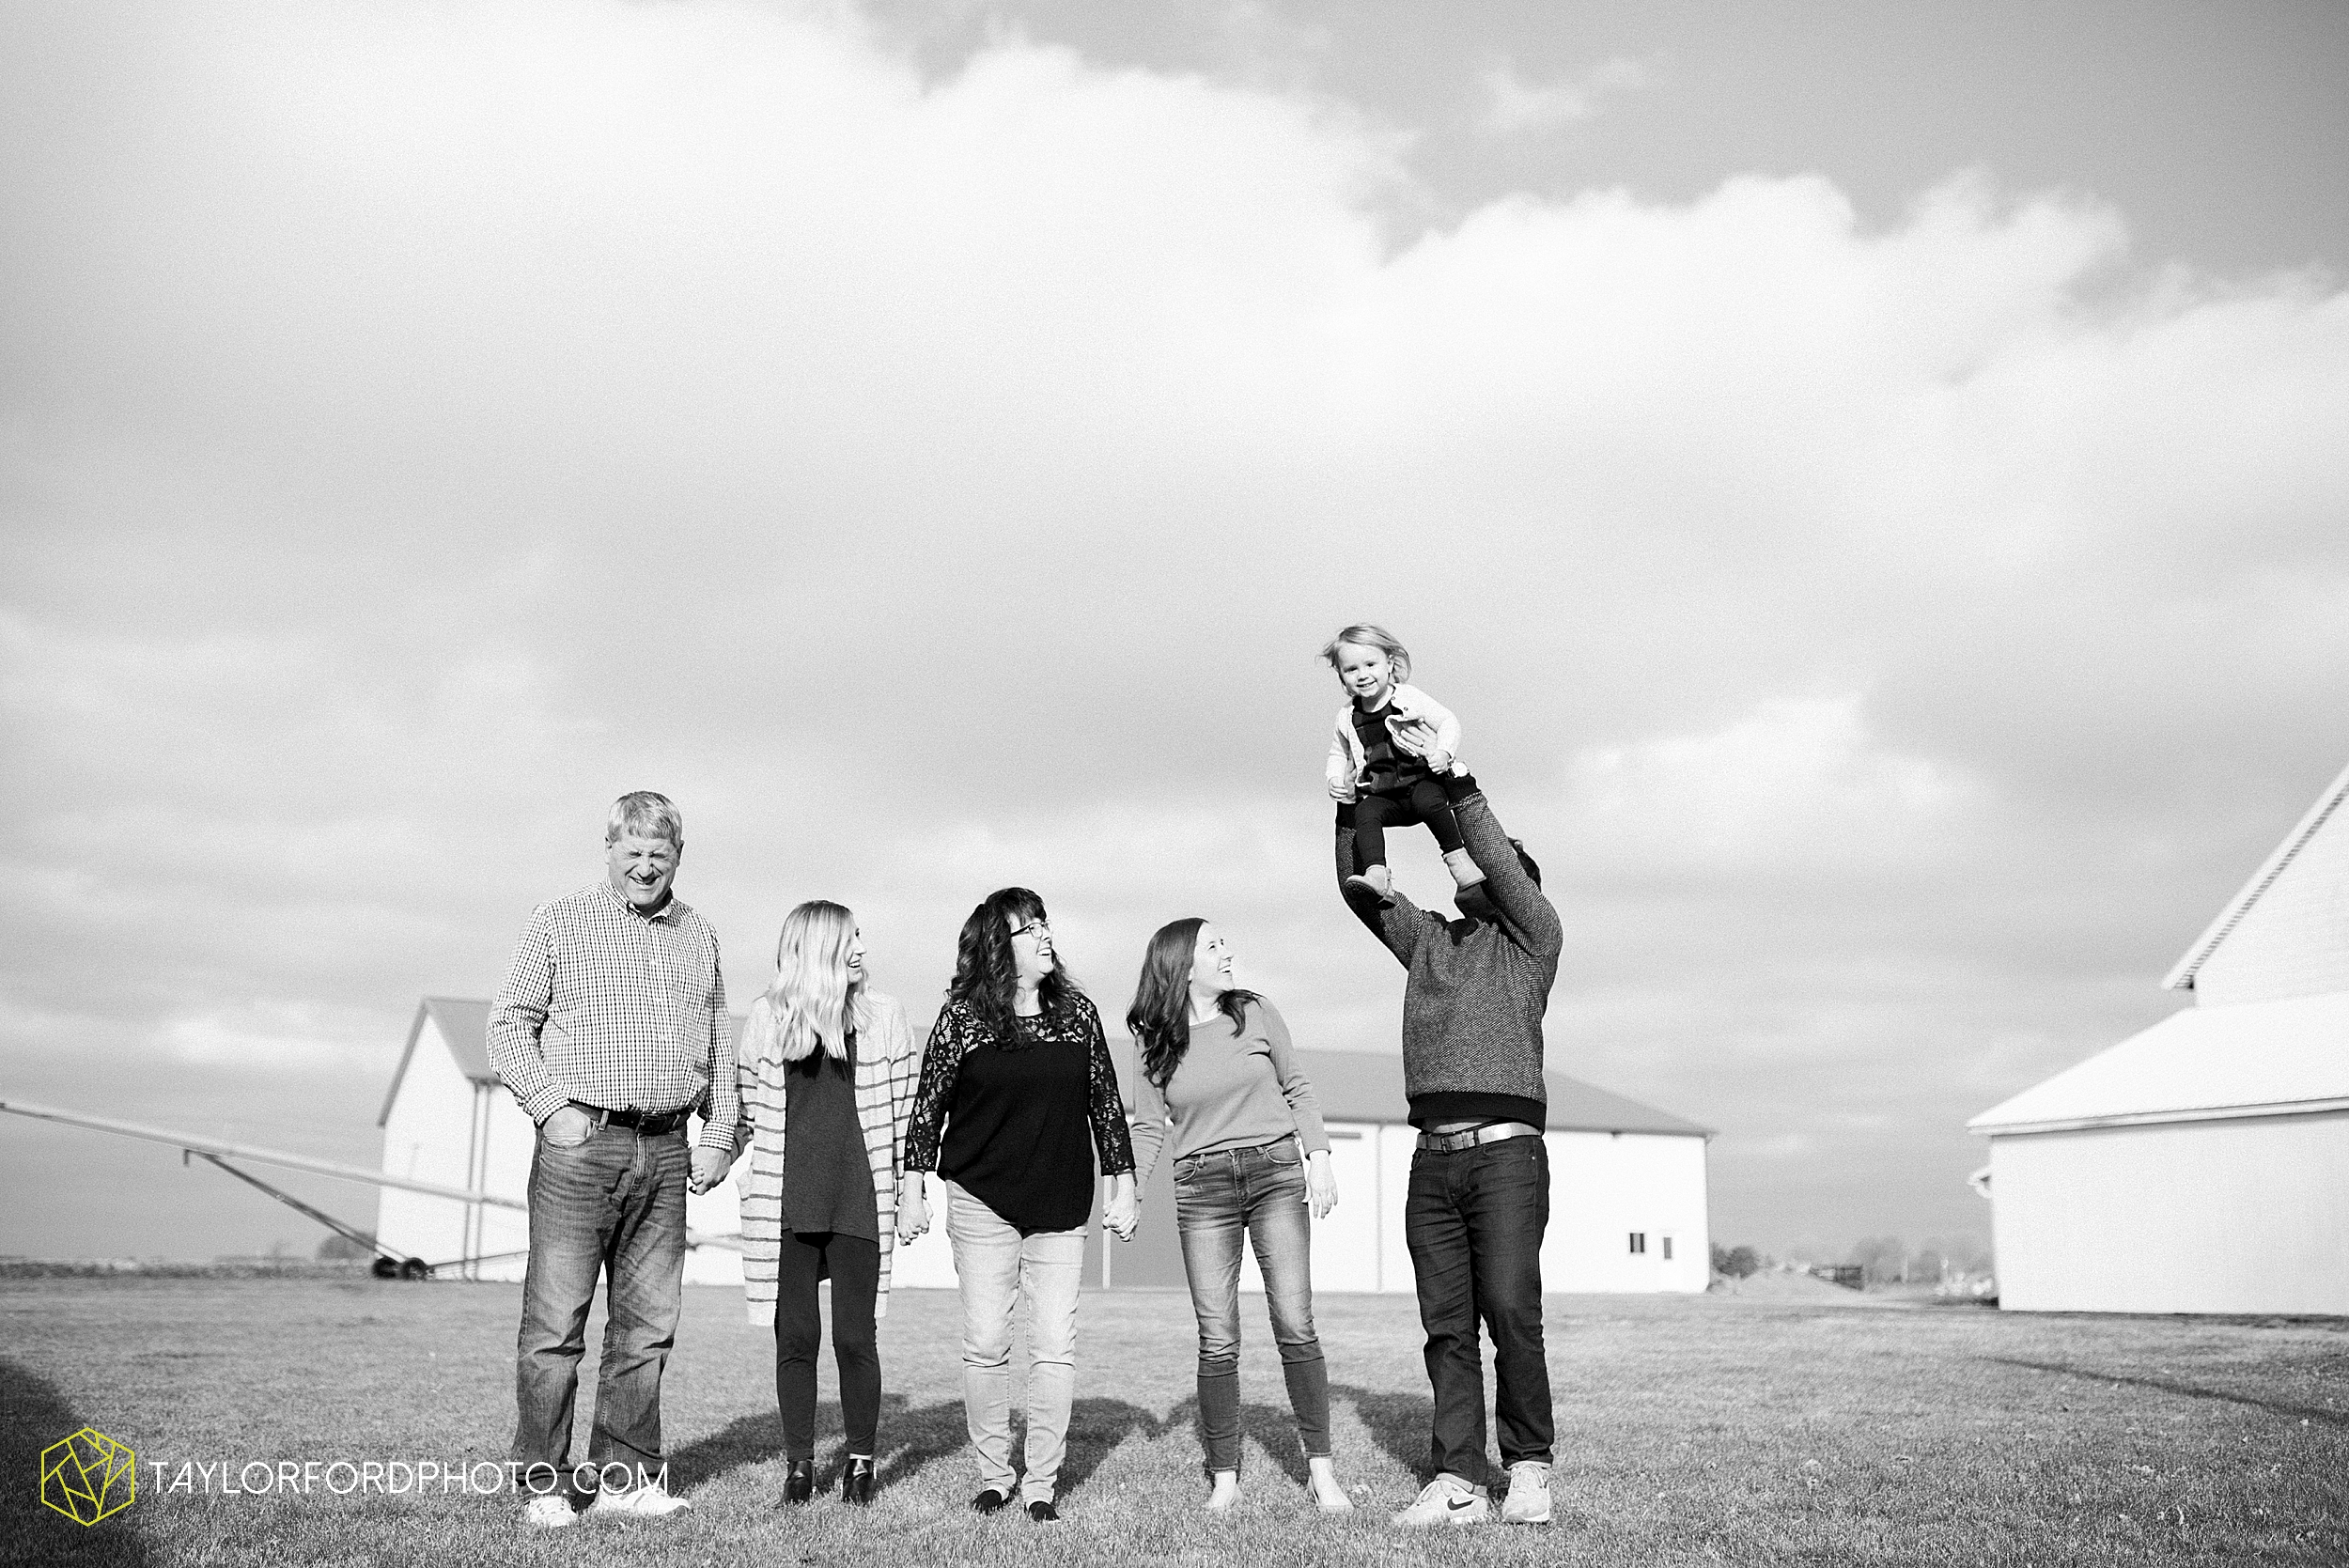 fortney-matthews-extended-family-van-wert-ohio-at-home-family-farm-photography-taylor-ford-hirschy-photographer_2032.jpg